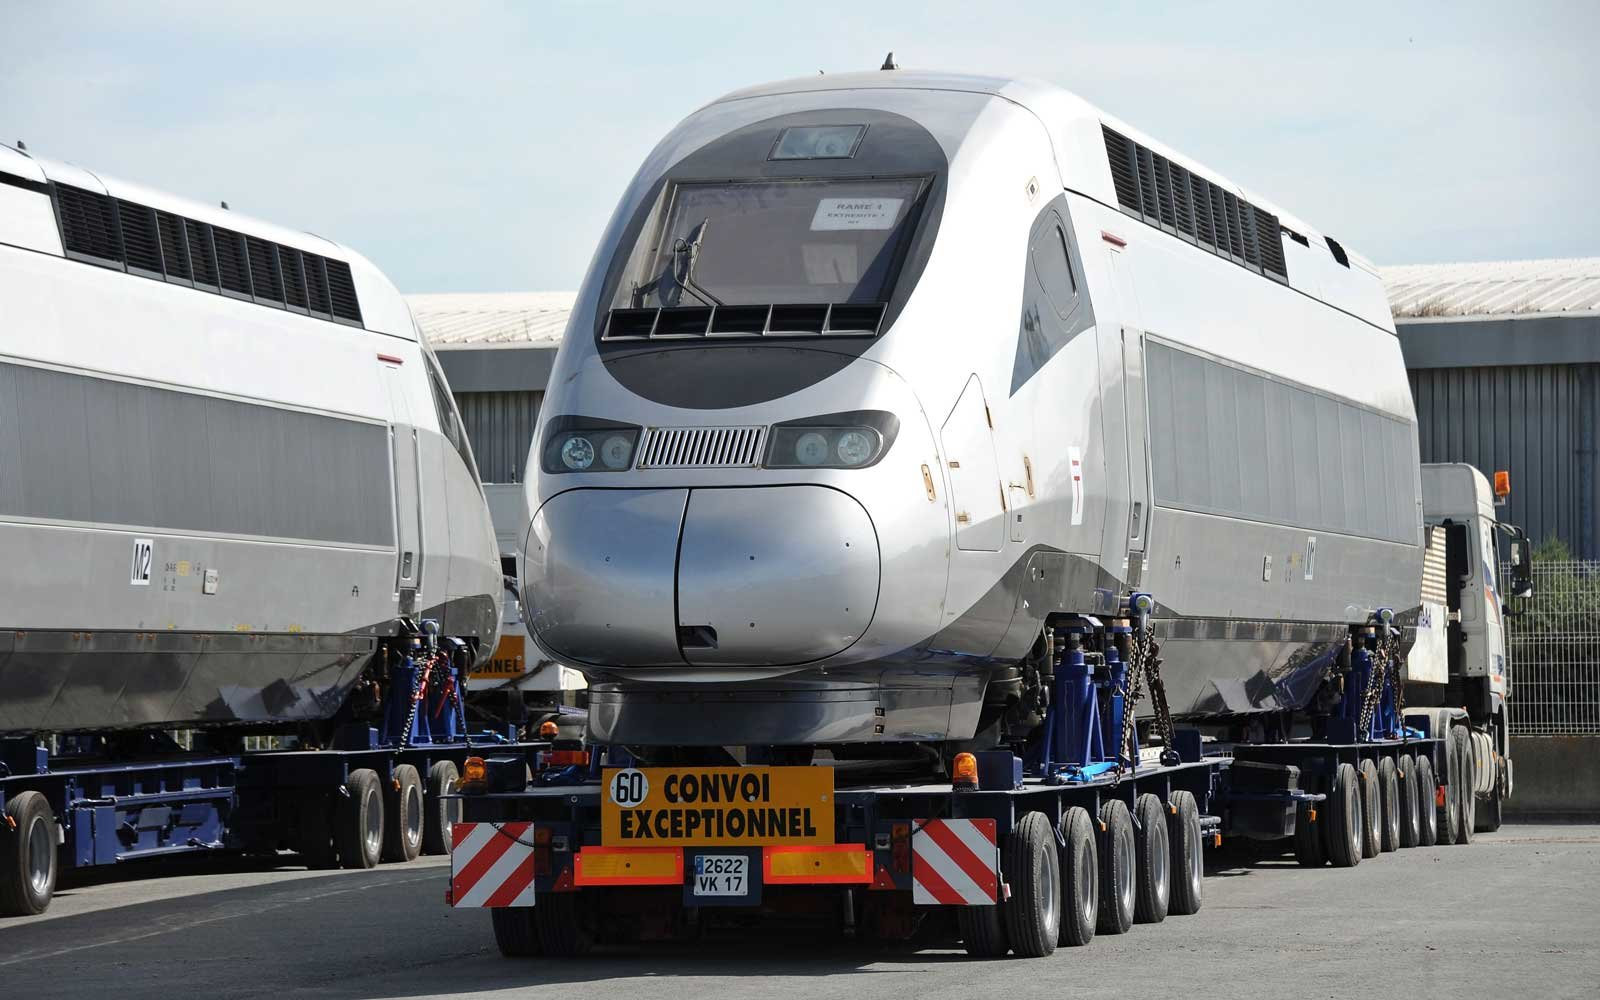 You Can Now Travel Across Morocco on Africa's First High-speed Train